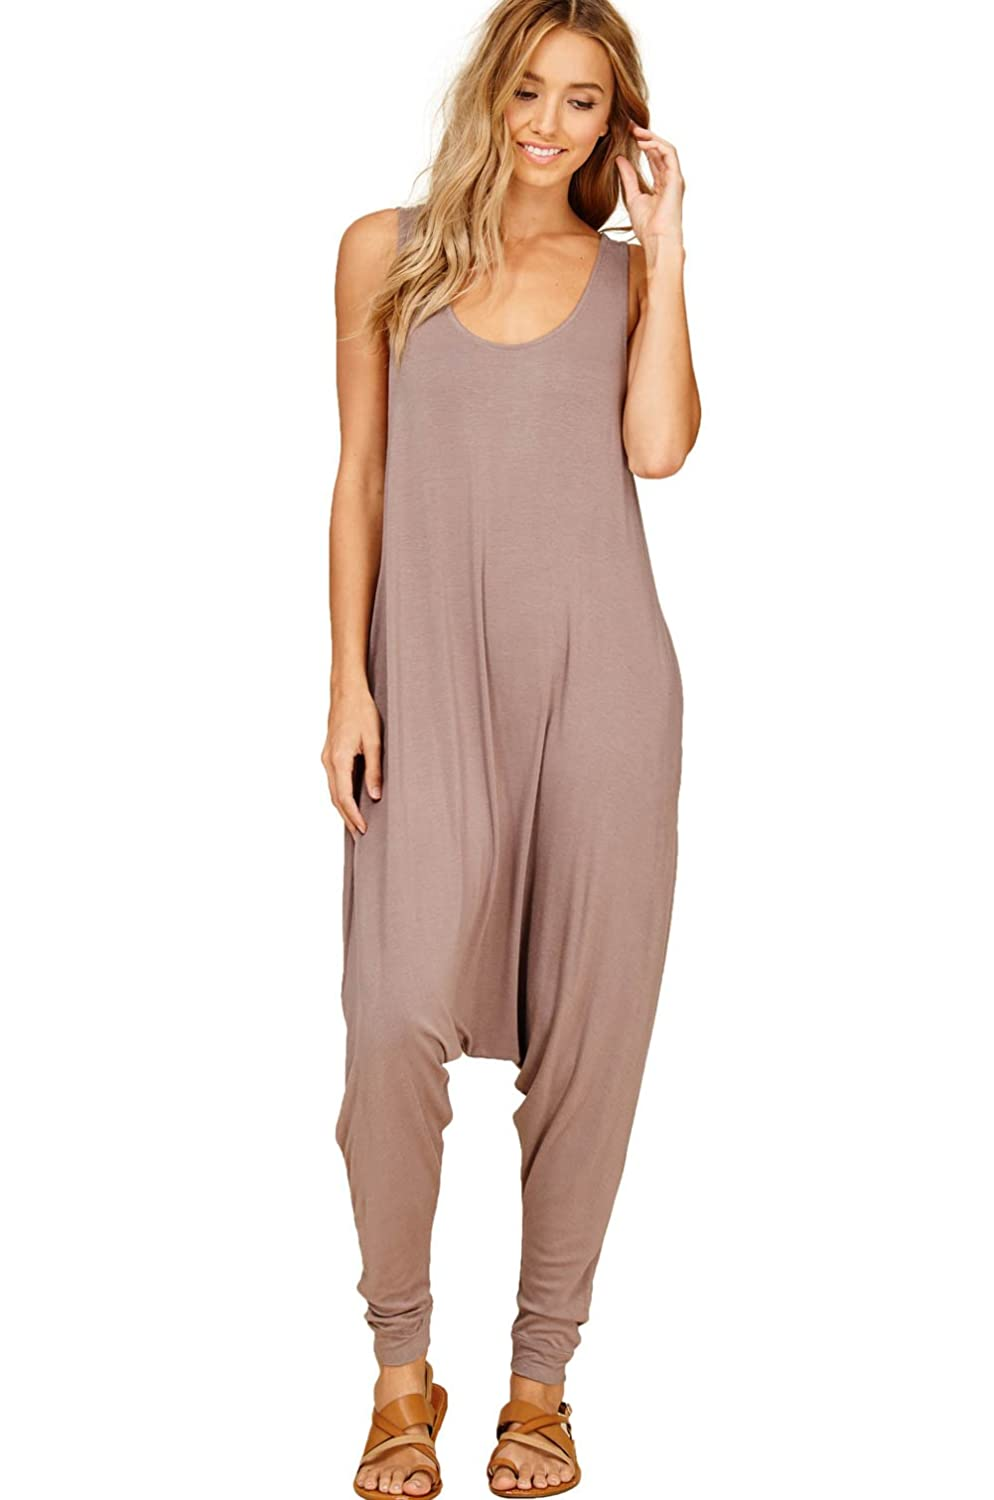 106dcce6fe18 Amazon.com  Annabelle Women s Comfy Rayon Solid Color Sleeveless Harem  Jumpsuits with Pockets  Clothing